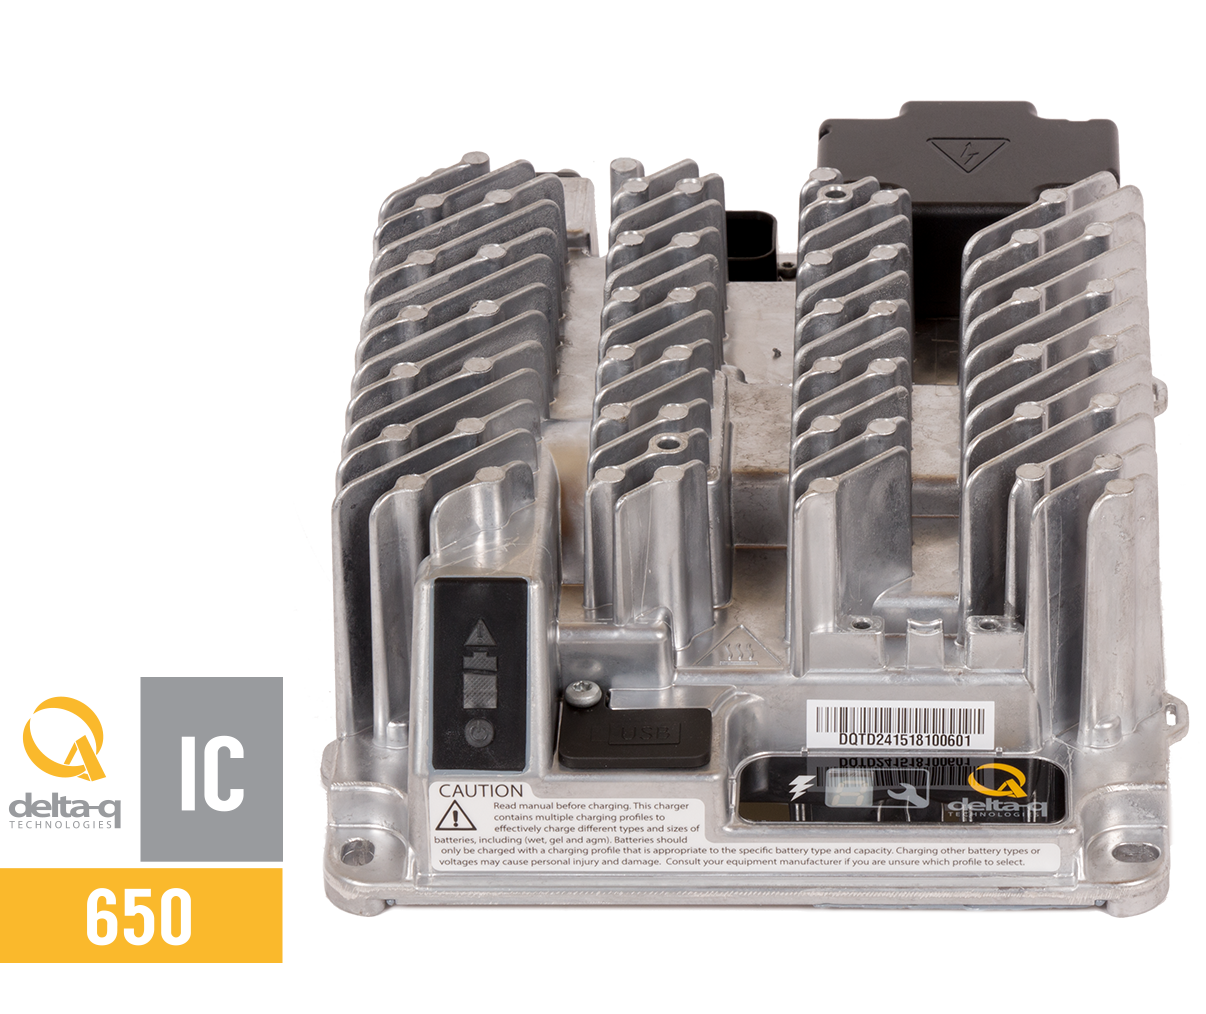 Ic650 Industrial Battery Charger Delta Q Technologies